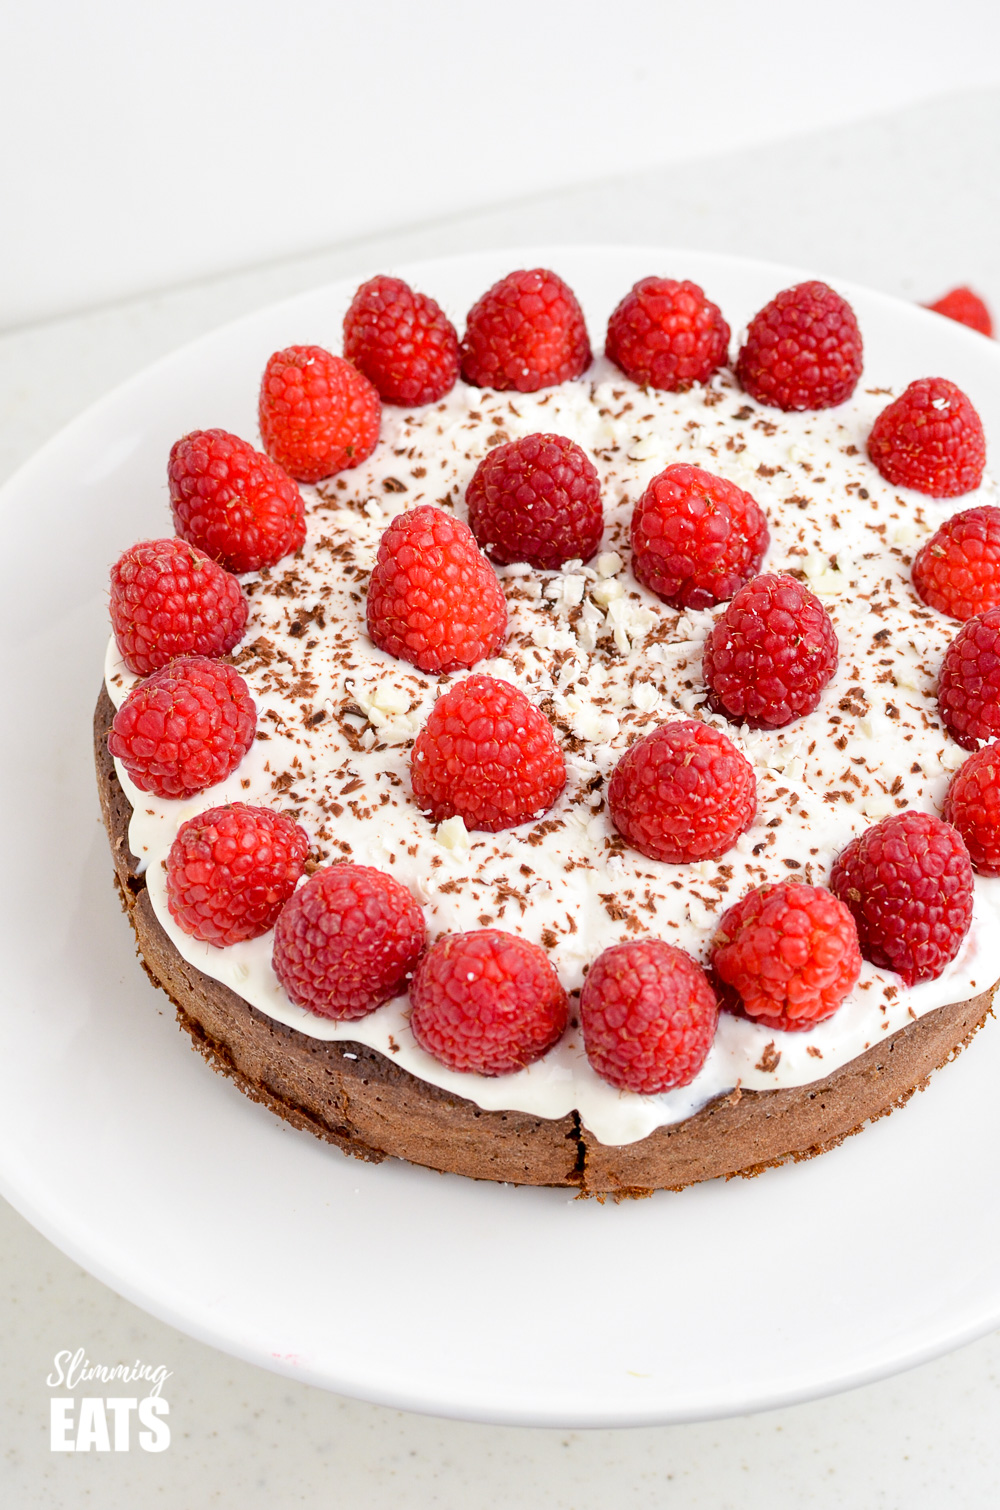 Raspberry Topped Chocolate Scan Bran Cake on white cake stand